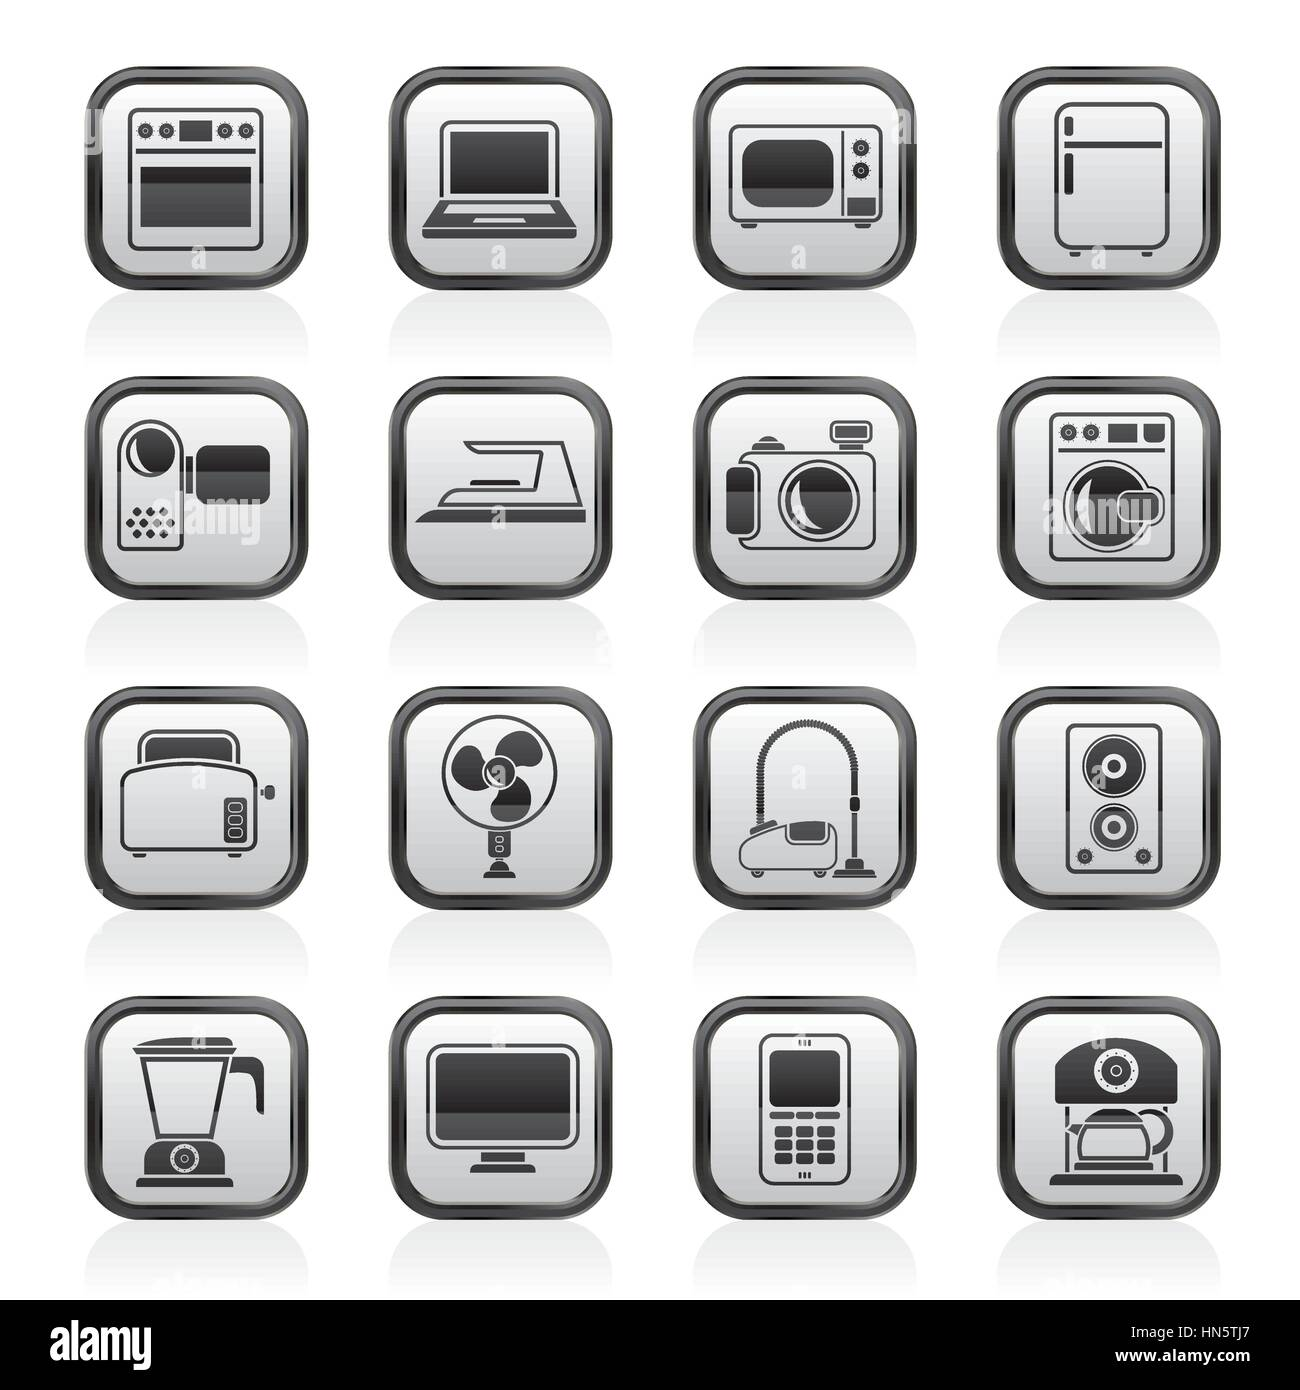 Household Electronics Stockfotos & Household Electronics Bilder - Alamy